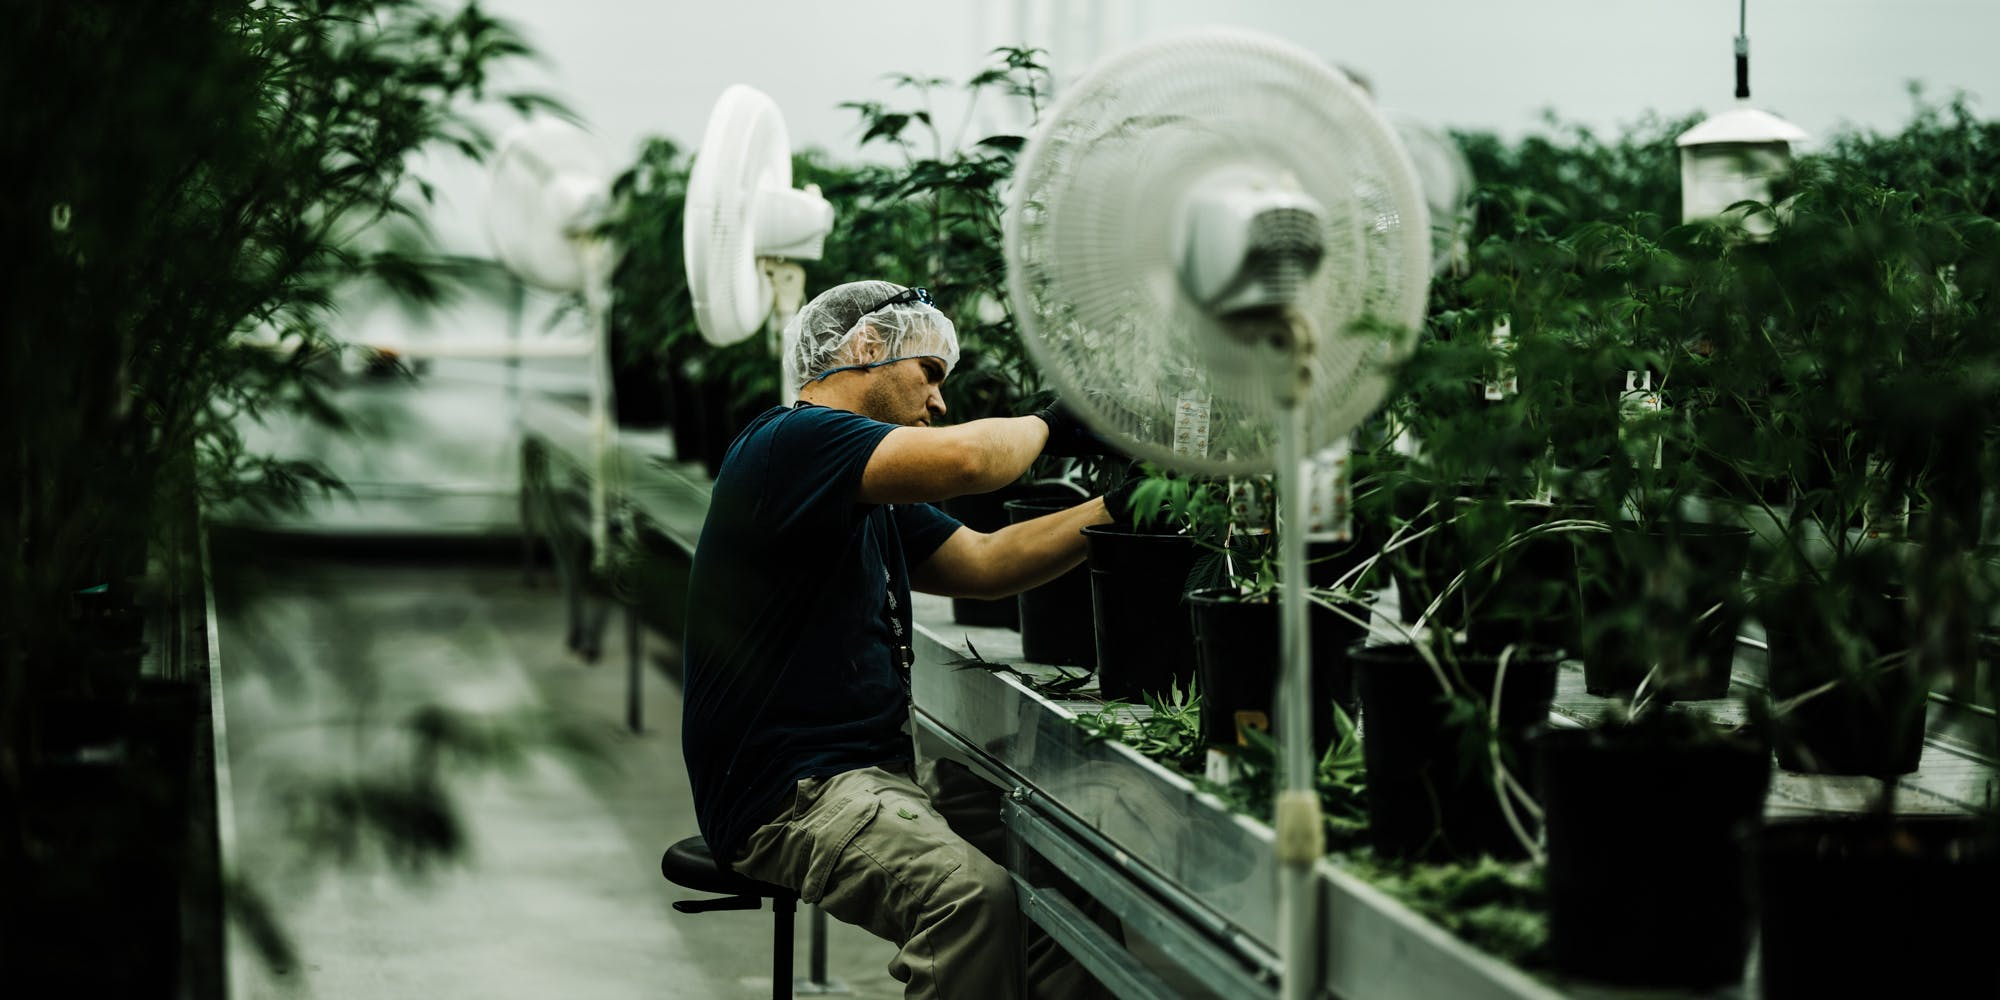 Canada Isn't Licensing Cannabis Cultivation Sites Fast Enough To Meet Demand